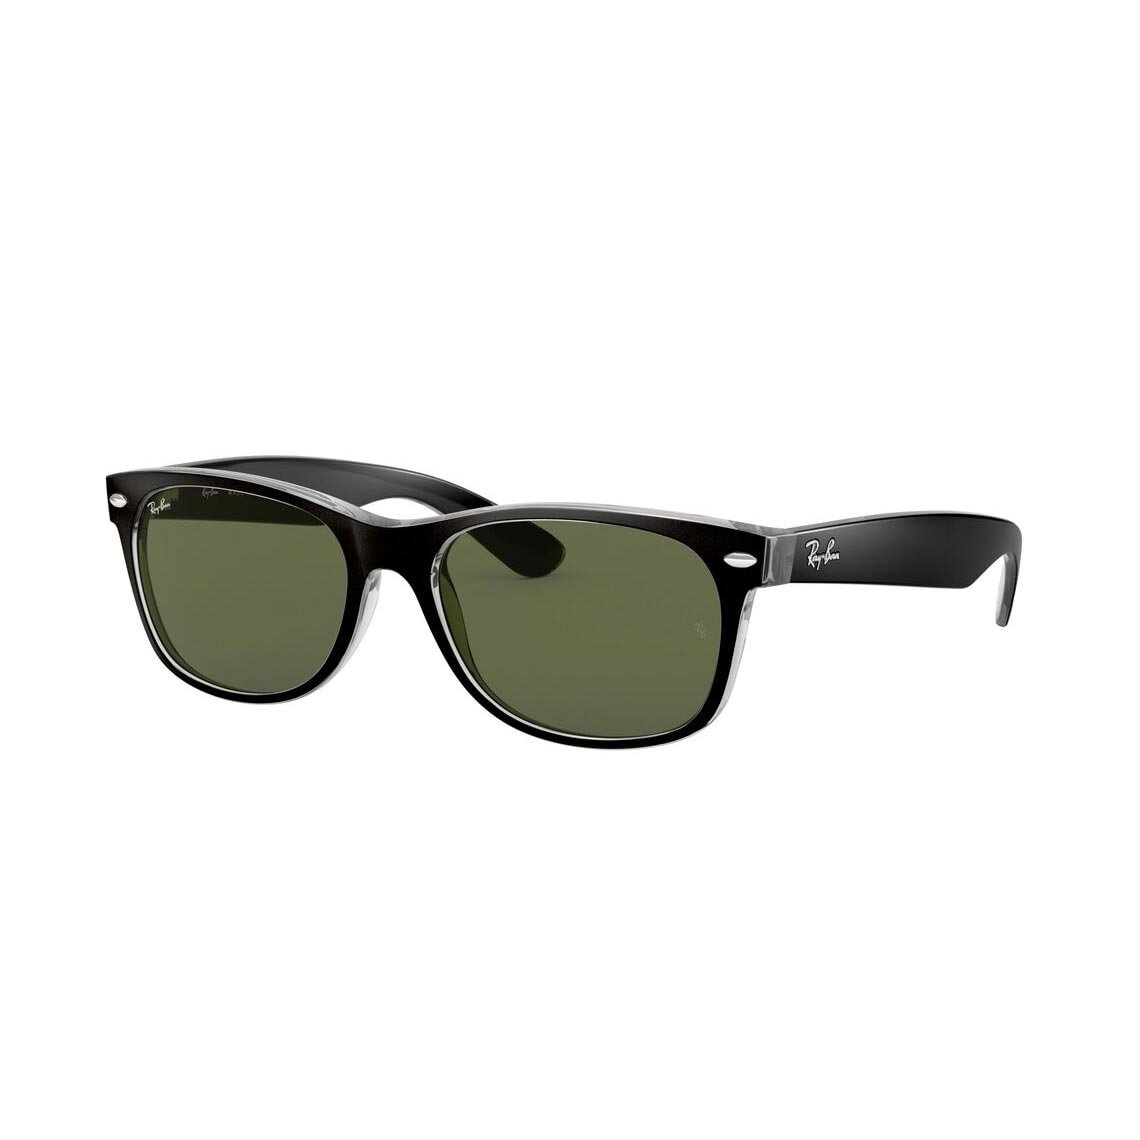 Ray-Ban New Wayfarer RB2132 6052 52